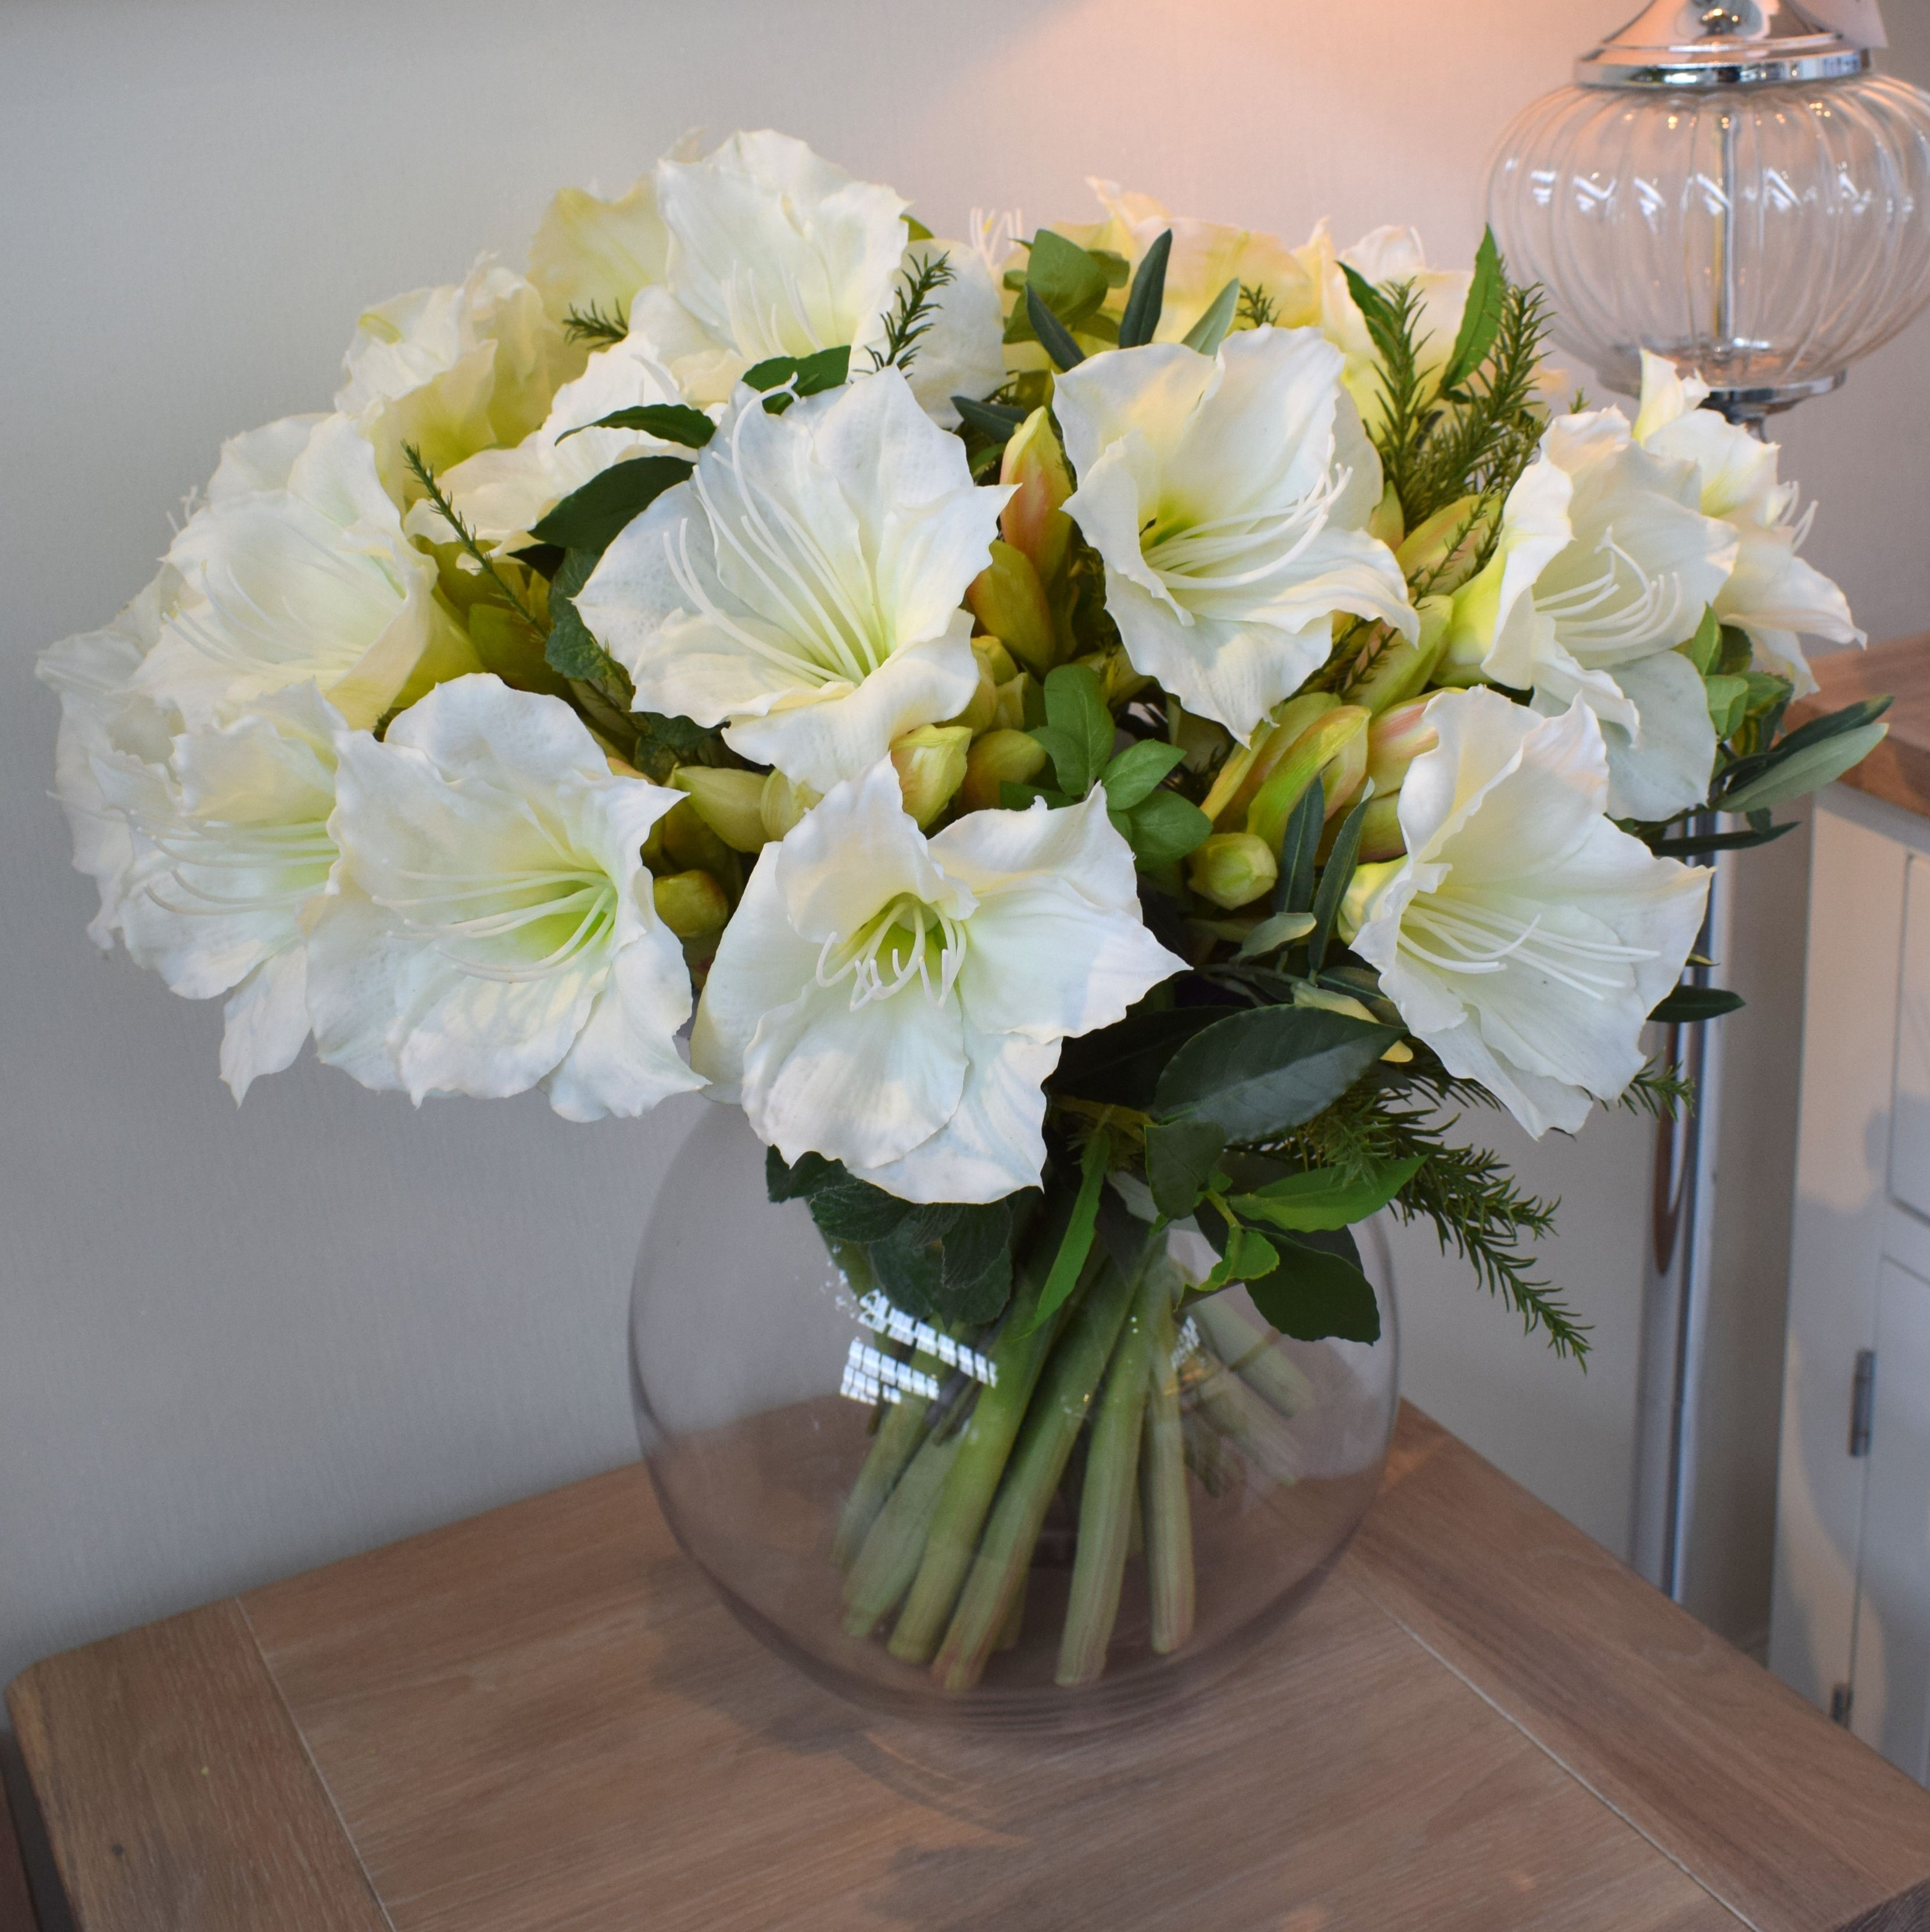 Artificial Flower Arrangement Of White Amaryllis And Herbs In A